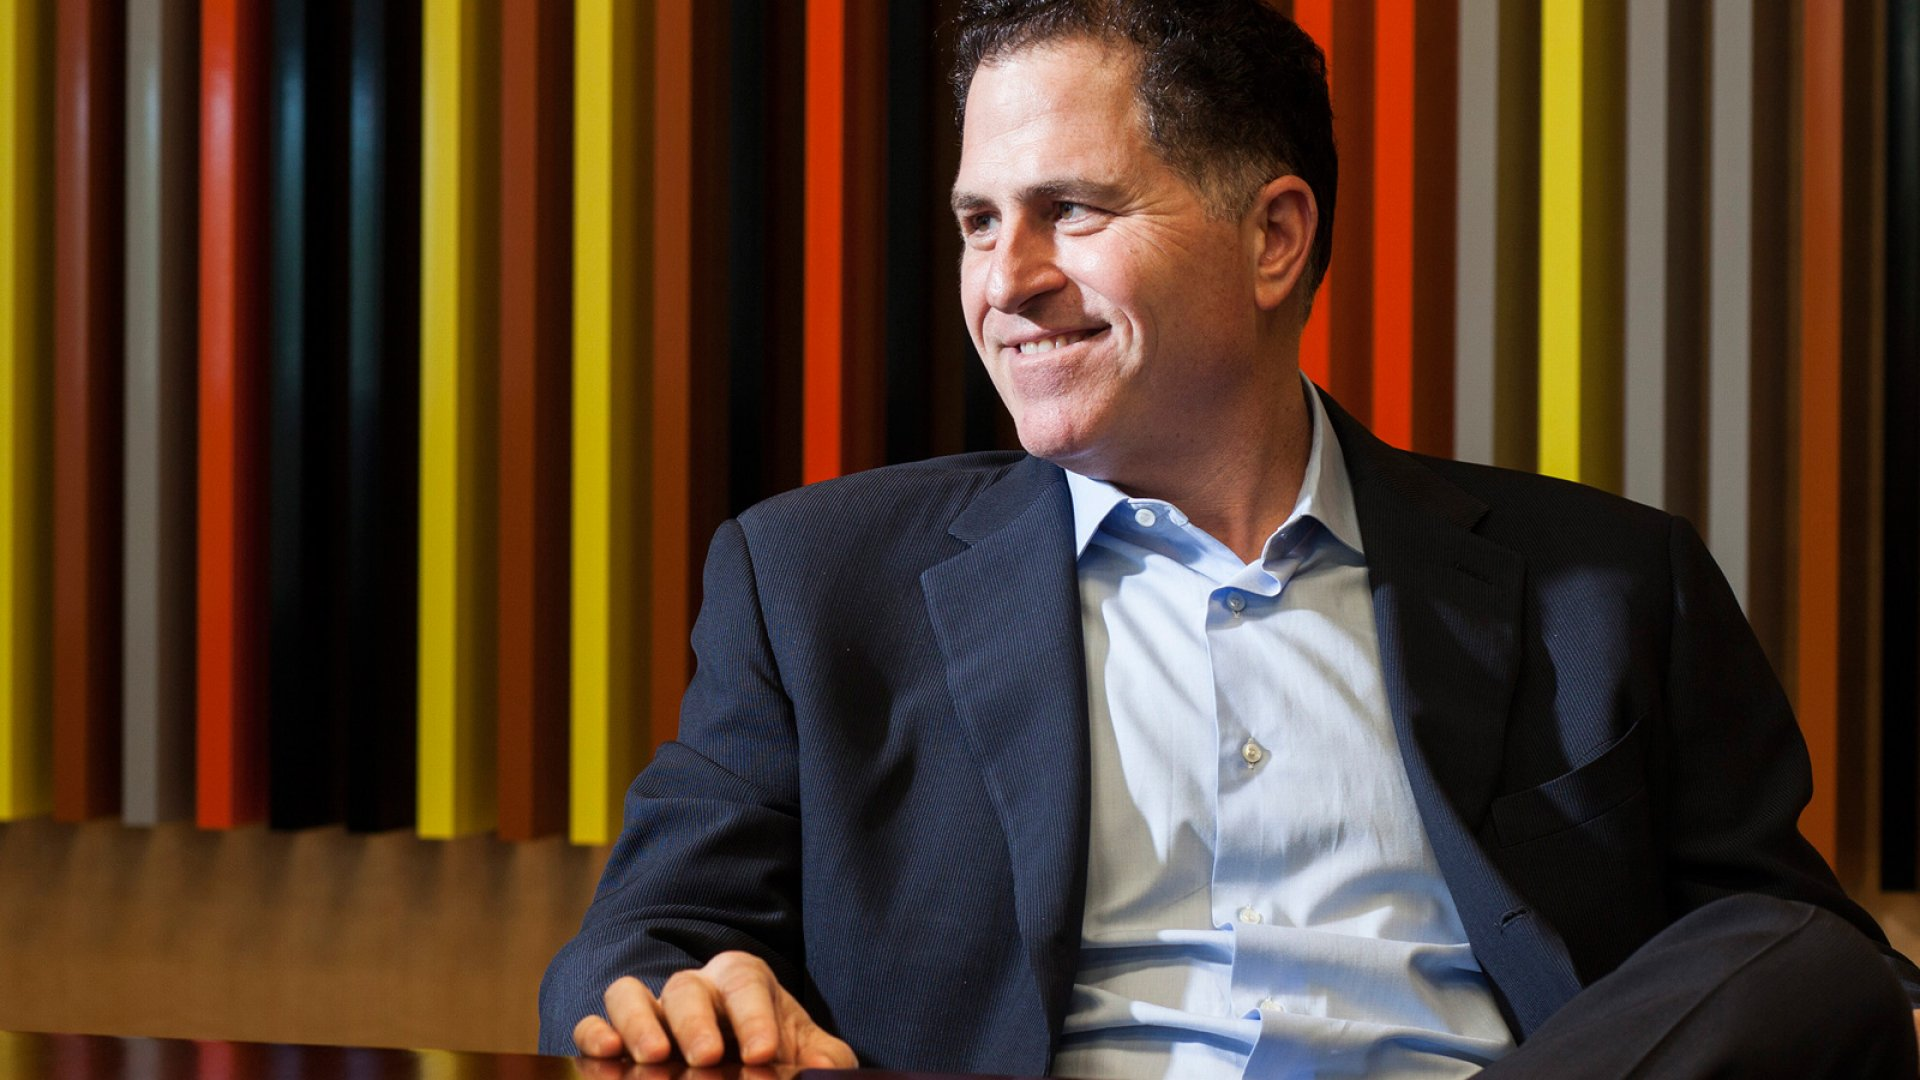 Michael Dell's Rules for Winning Startups